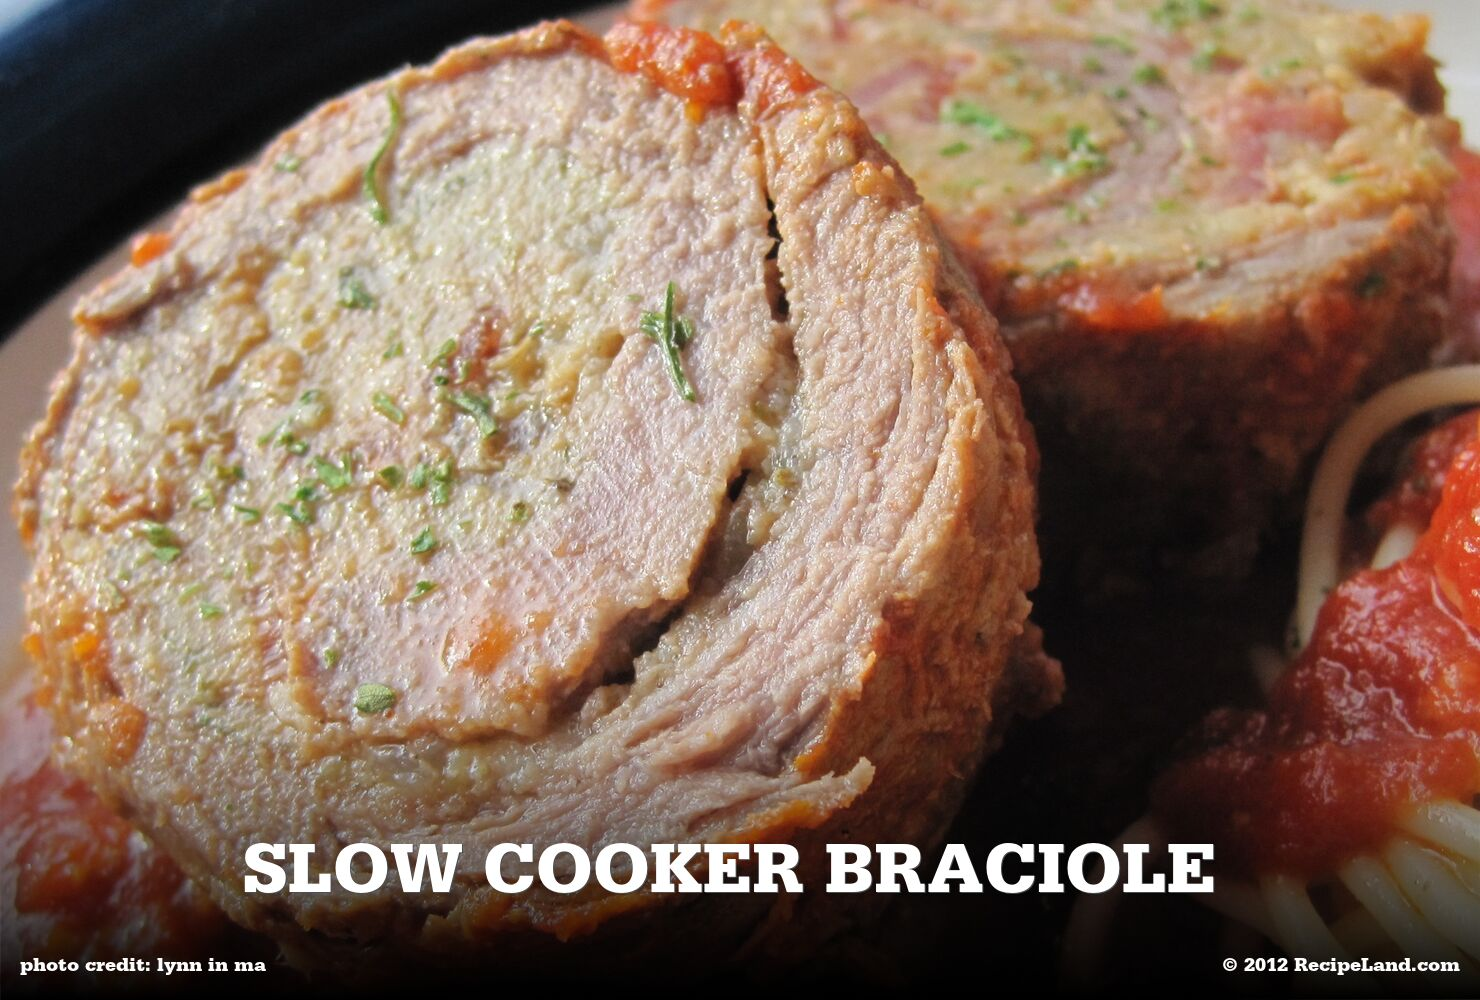 Slow Cooker Braciole